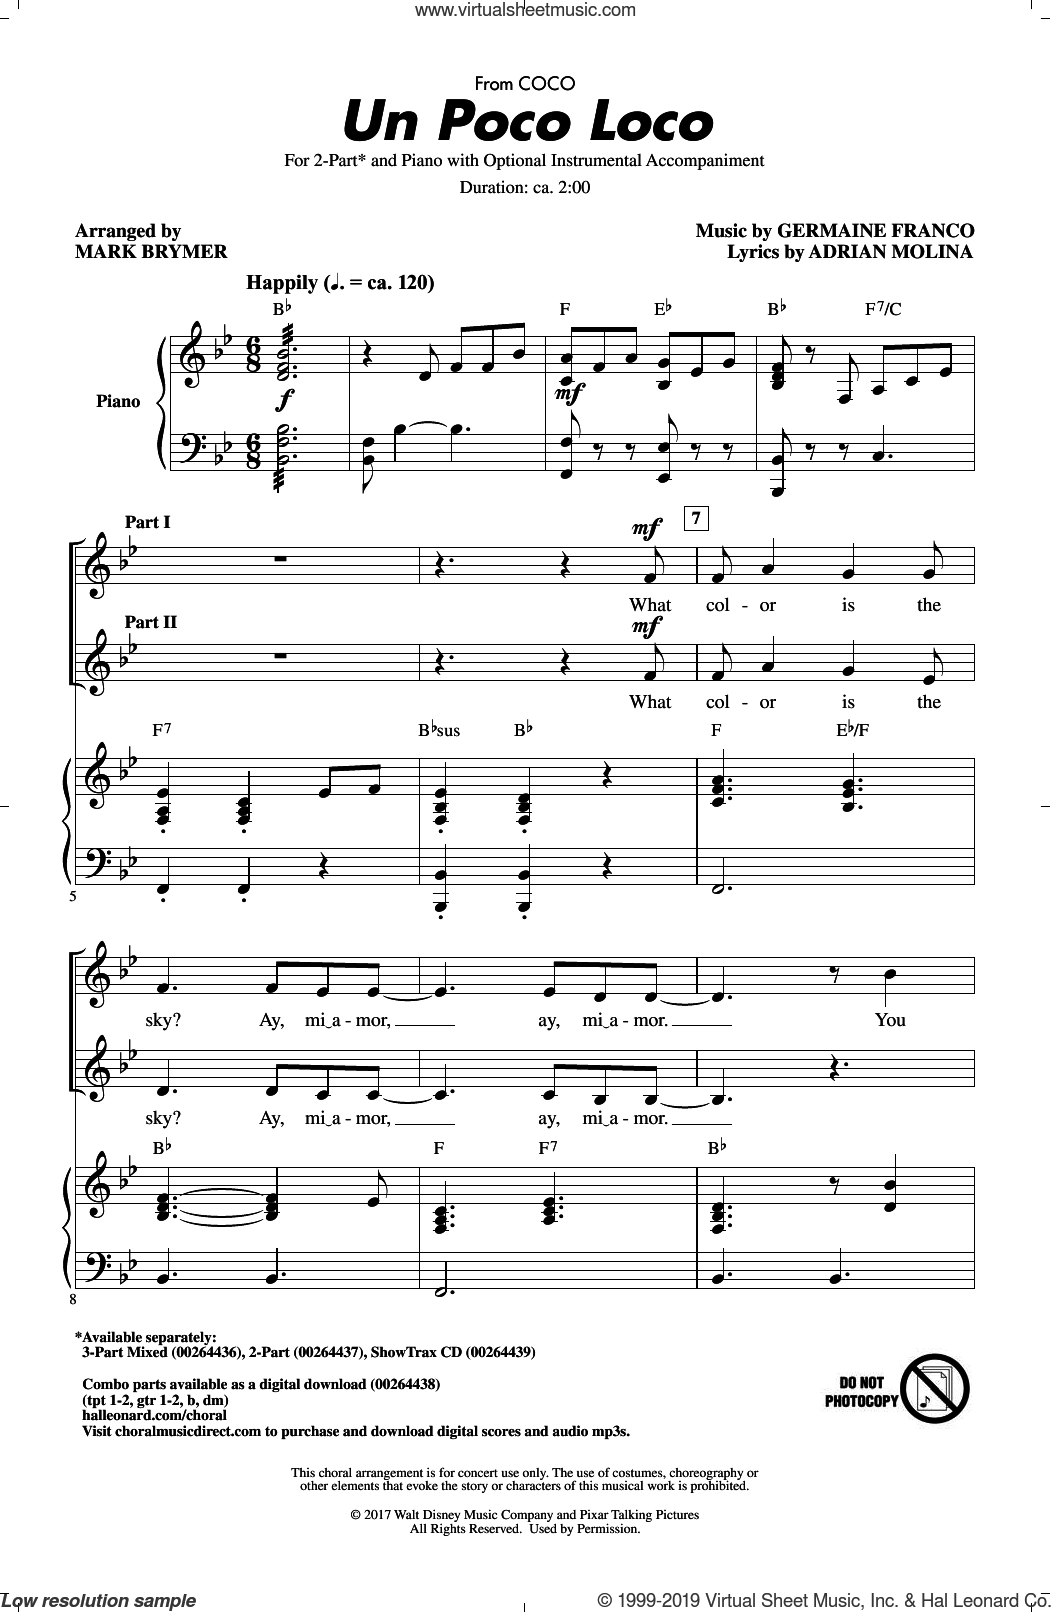 Un Poco Loco (from Coco) (arr. Mark Brymer) sheet music for choir (2-Part) by Germaine Franco, Mark Brymer, Adrian Molina and Germaine Franco & Adrian Molina, intermediate duet